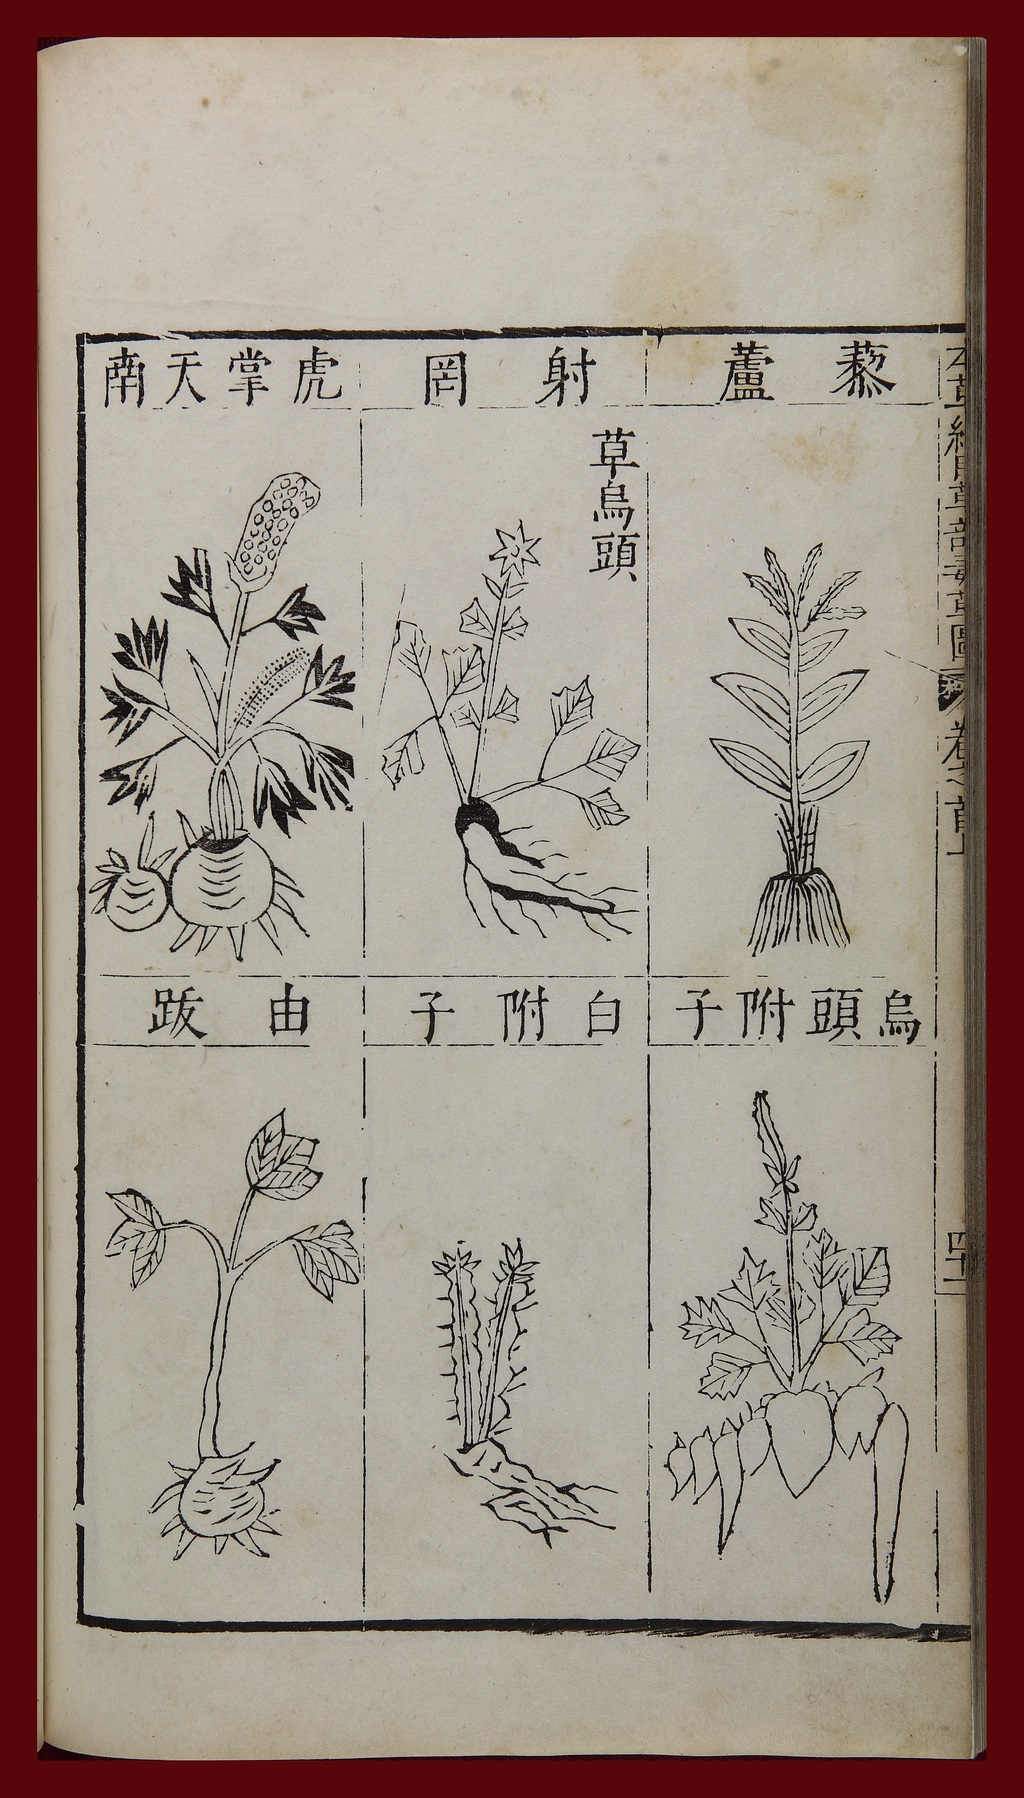 Images of toxic medicinal plants from China's most celebrated pharmacological work, Li Shizhen (1518-93), Compendium of Materia Medica (author's preface dated 1590). Woodblock edition of 1603. Wild aconite is the middle image in the top row. Cultivated aconite (main and subsidiary roots) are in the bottom right corner. Image credit: National Library of China. Posted on-line at the World Digital Library.